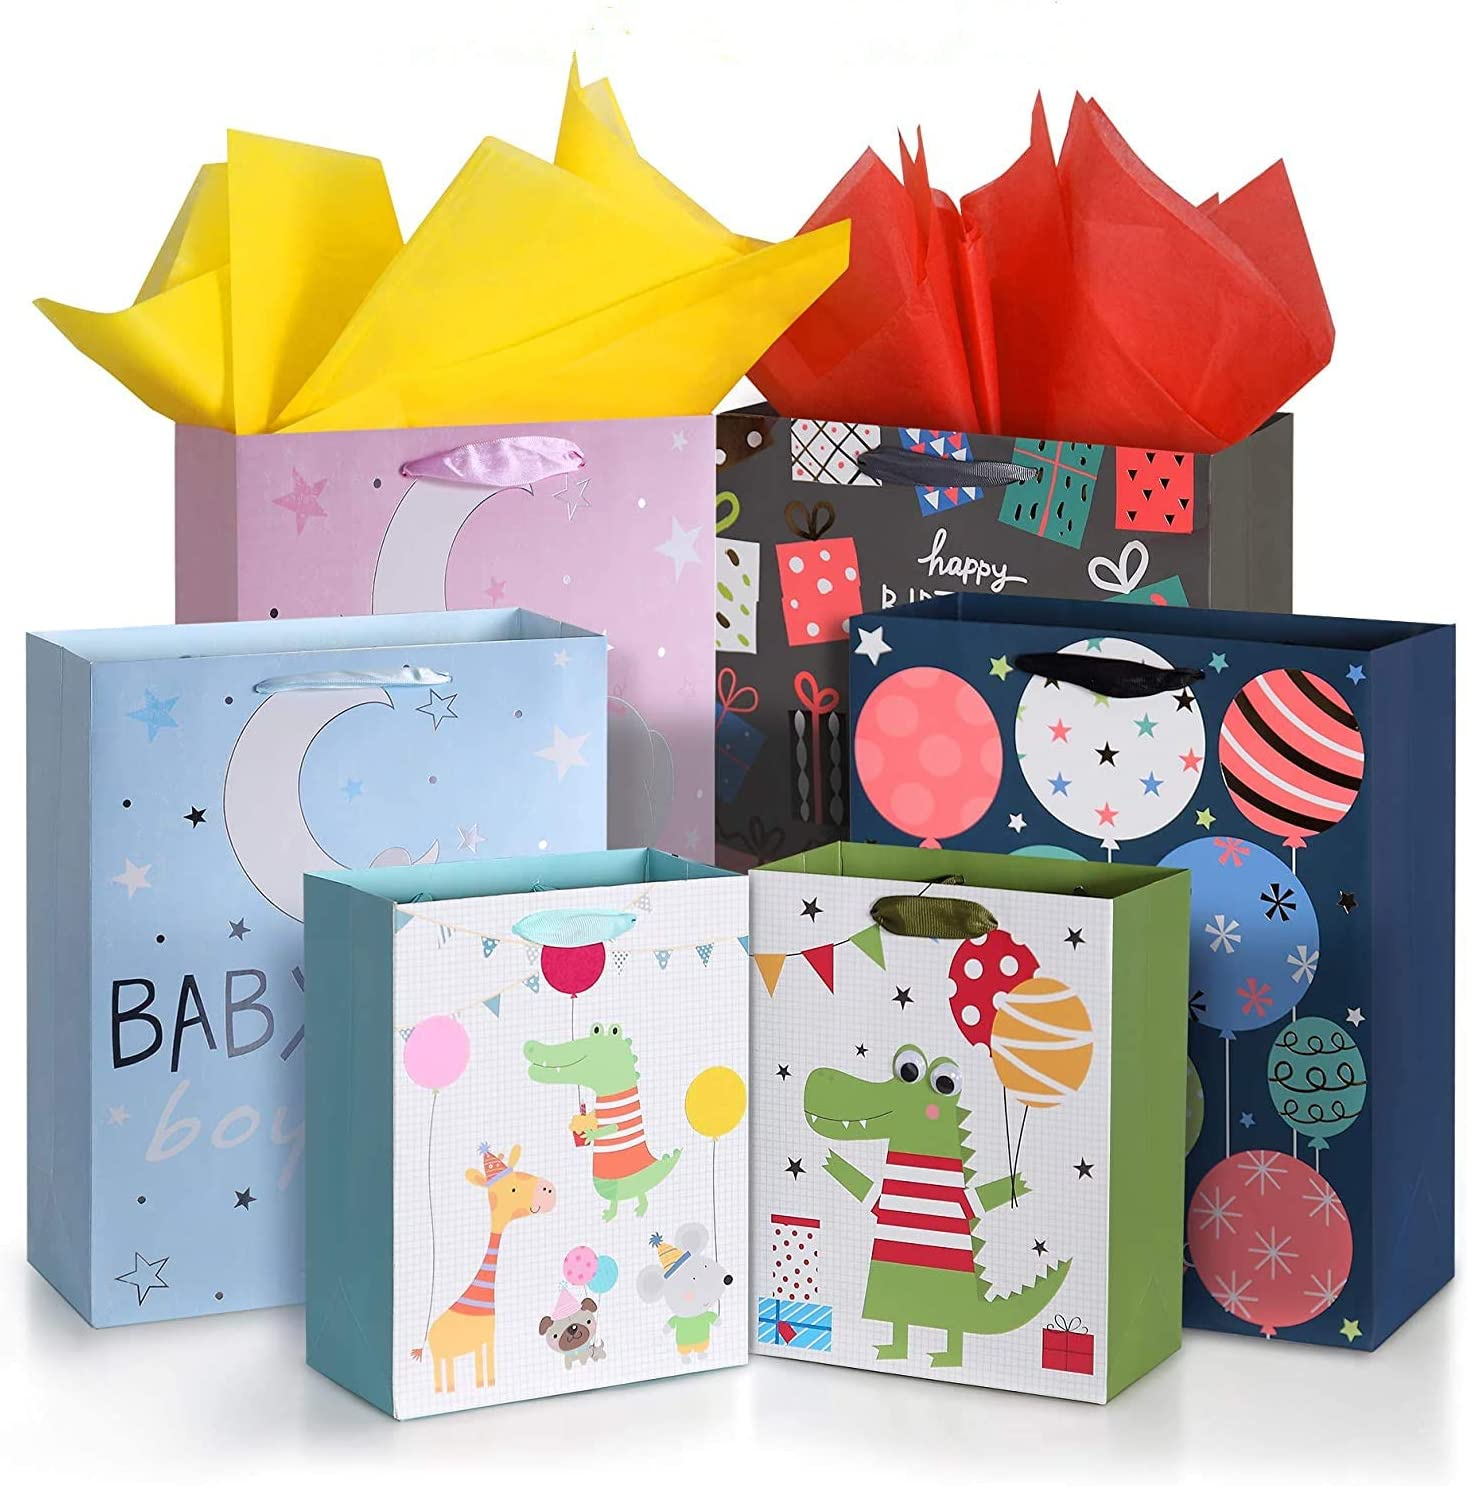 "OMEYA Paper Gift Bags,13"" Large Gift Bags and 9"" Small Gift Bags with 12PCS Tissue Paper, for Birthday, Baby Shower,Parties, Wedding, Shopping and More-(Pack of 6; 2X 9"",4X13"")"